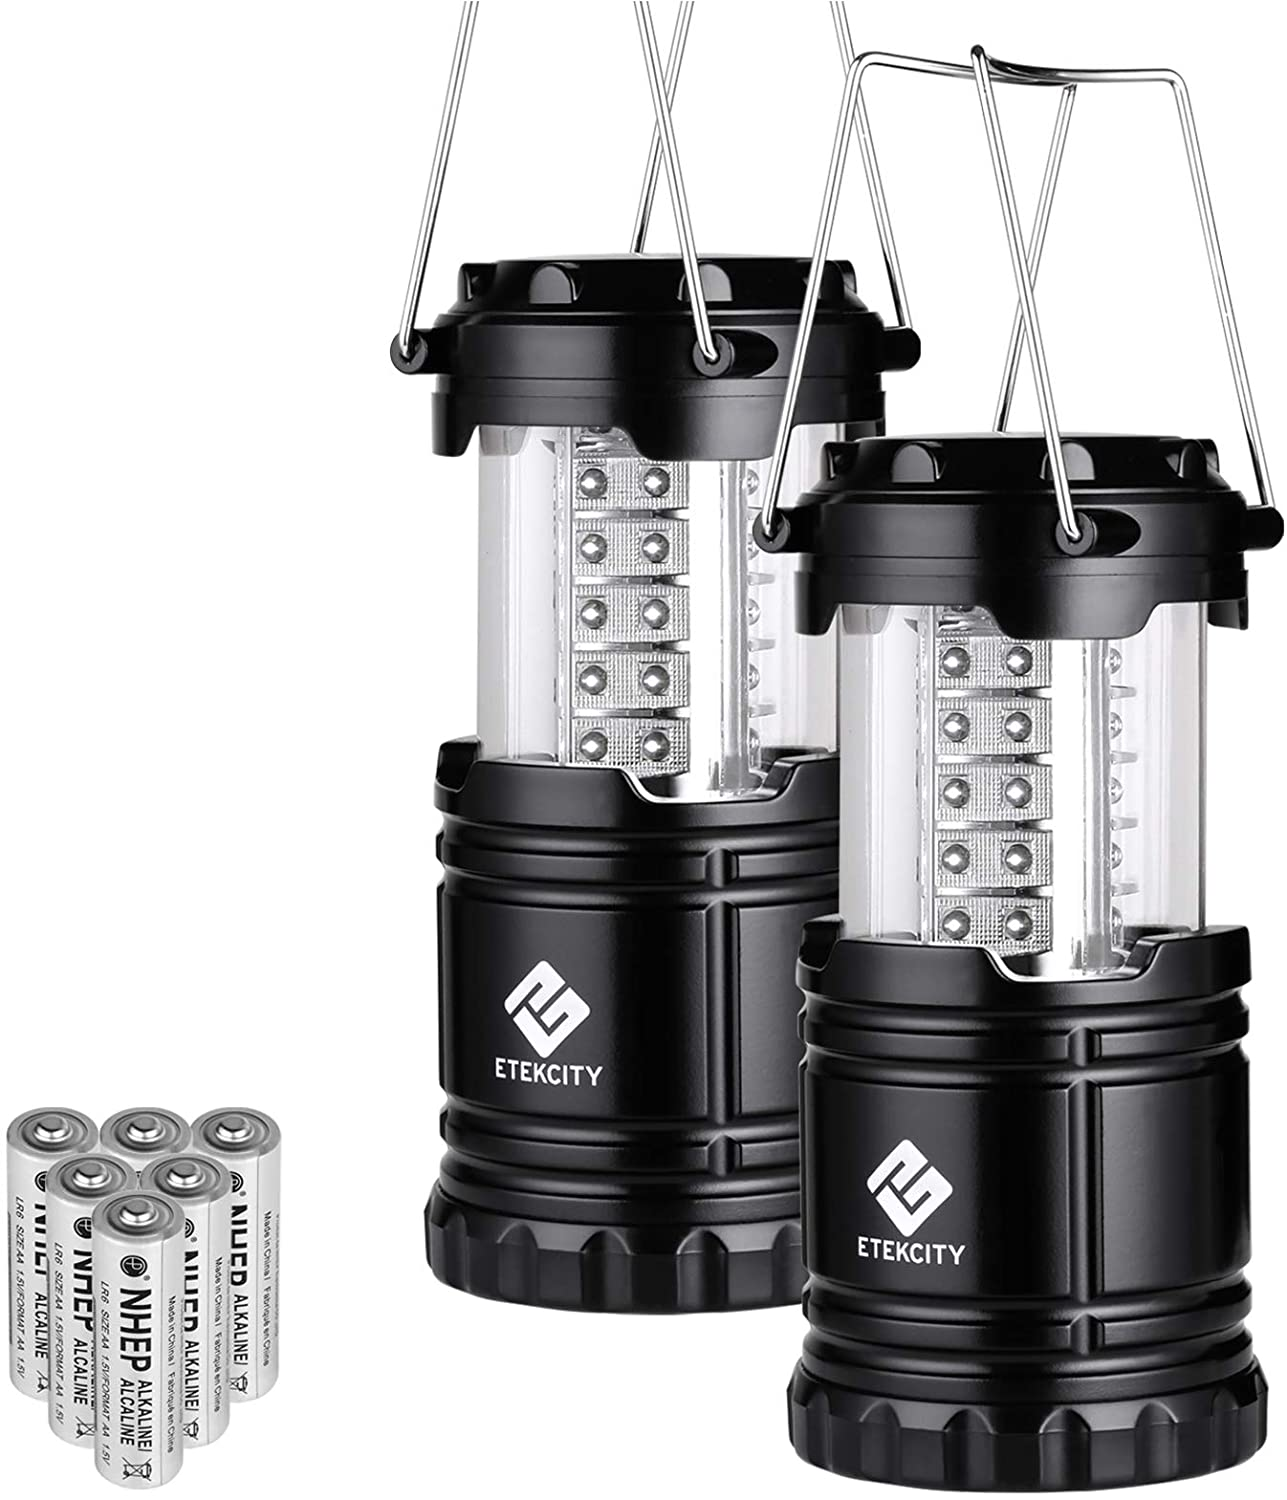 2 led lanterns for camping or power outages